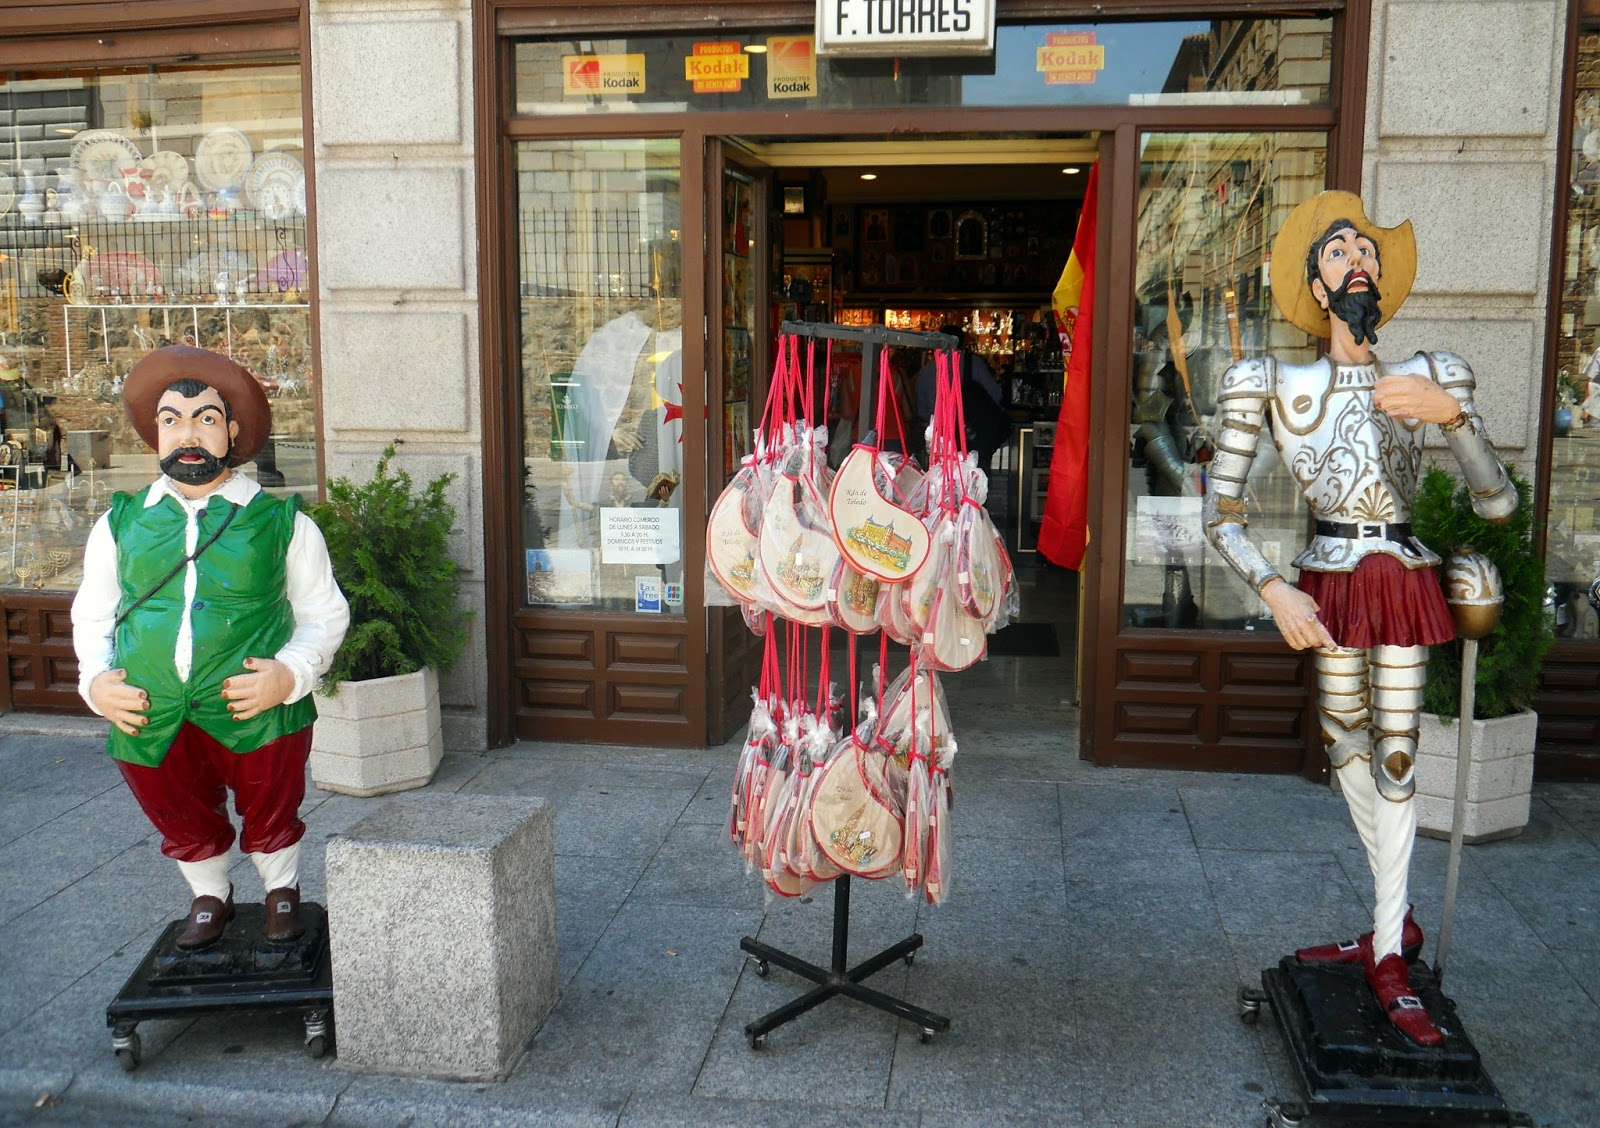 Figures of Don Quixote and Sancho Panza outside the gift shop at the Hotel Alfonso VI, Toledo